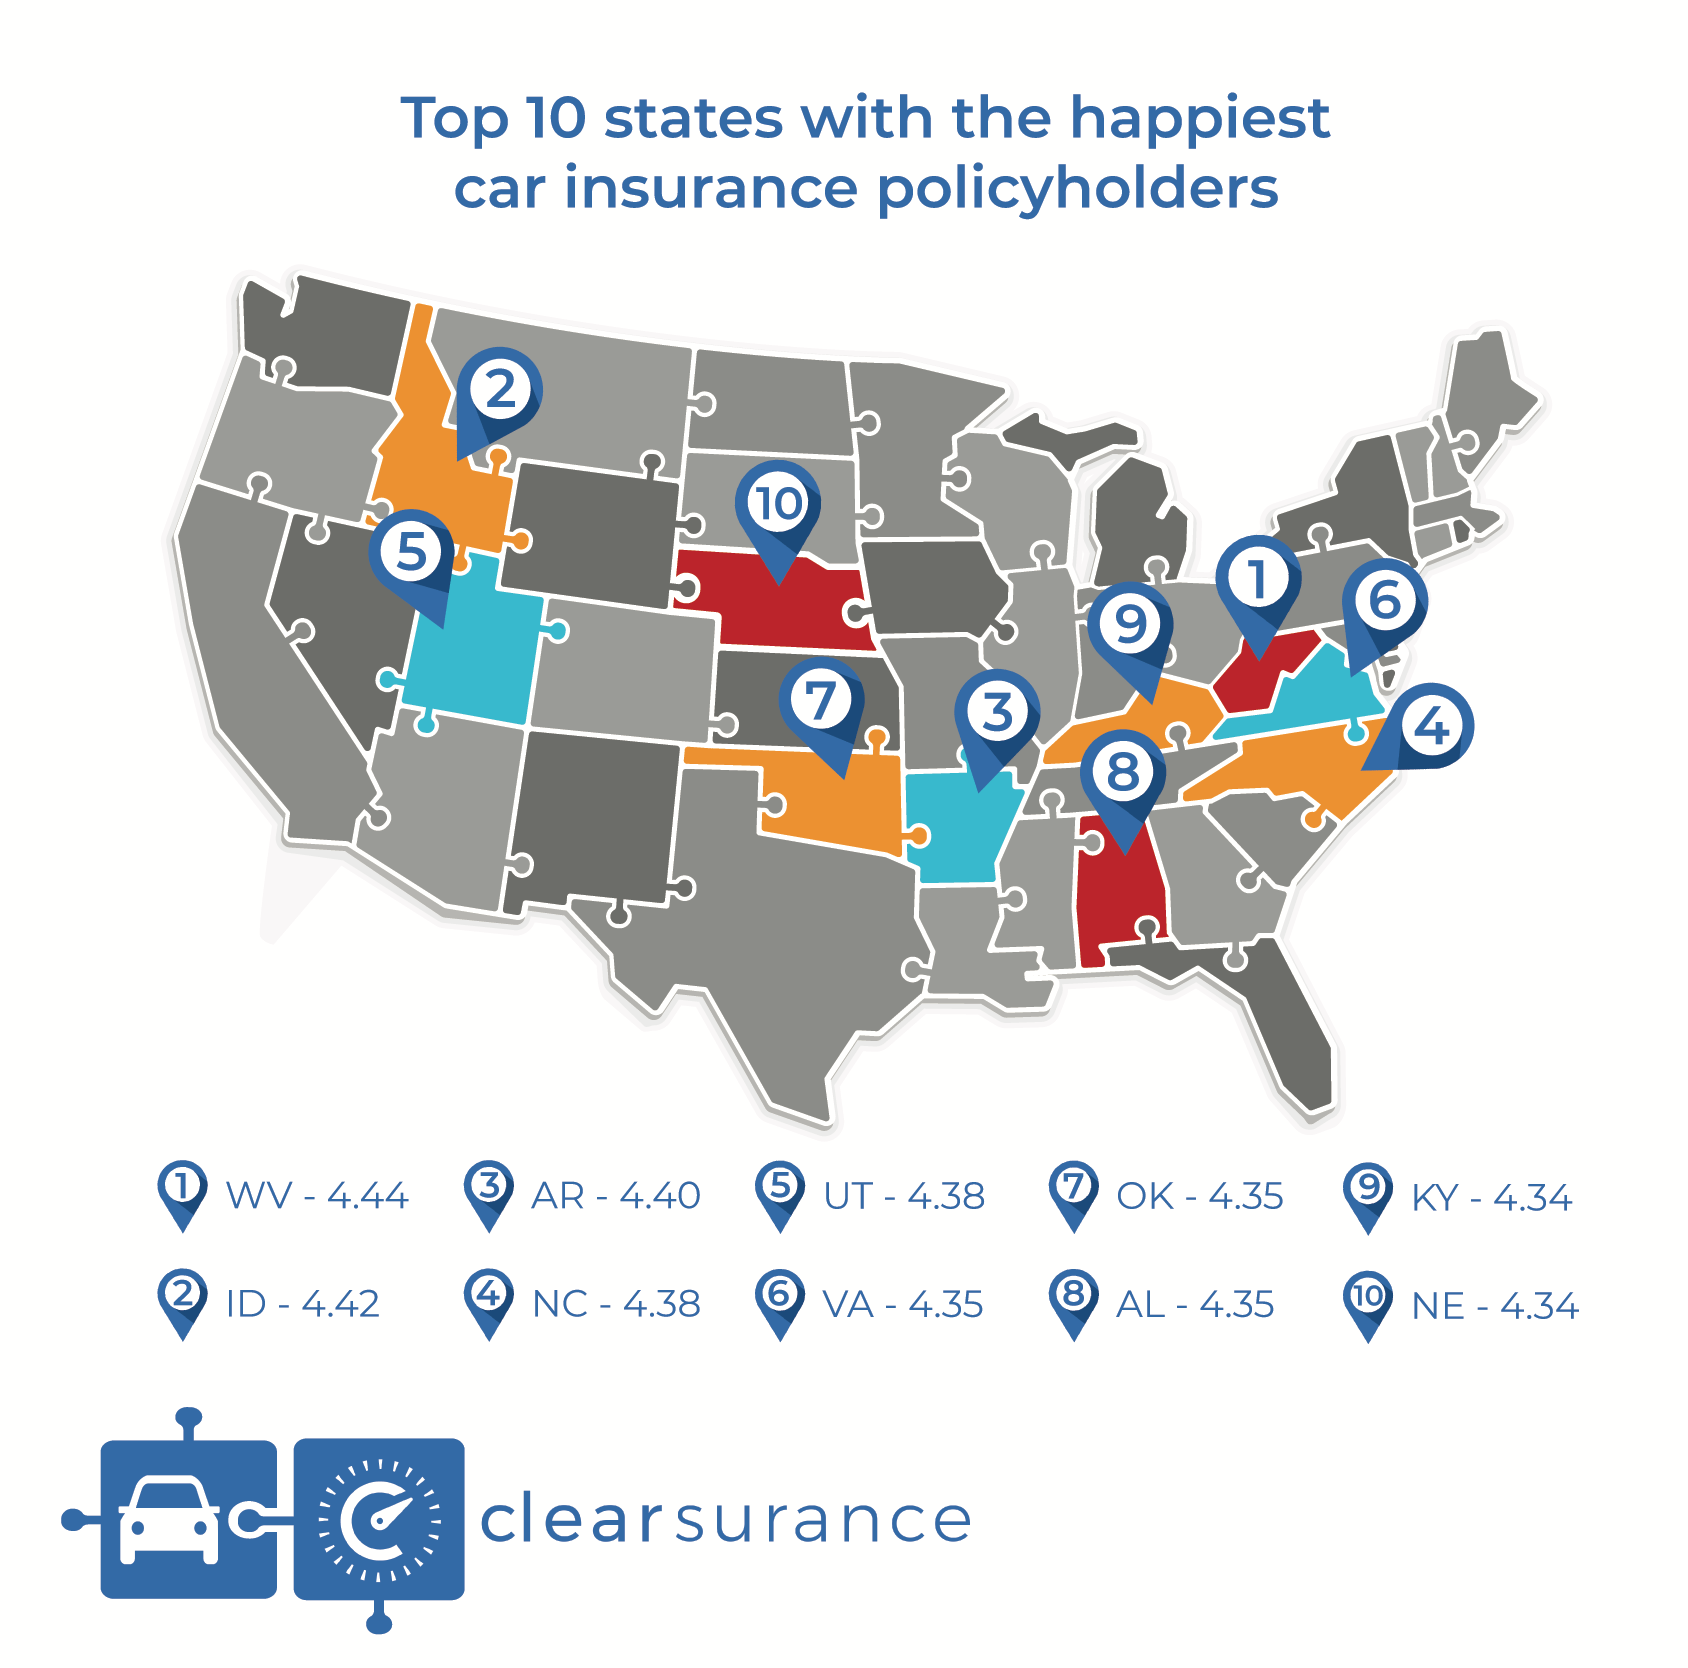 Top 10 States With The Happiest And Least Happy Car Insurance